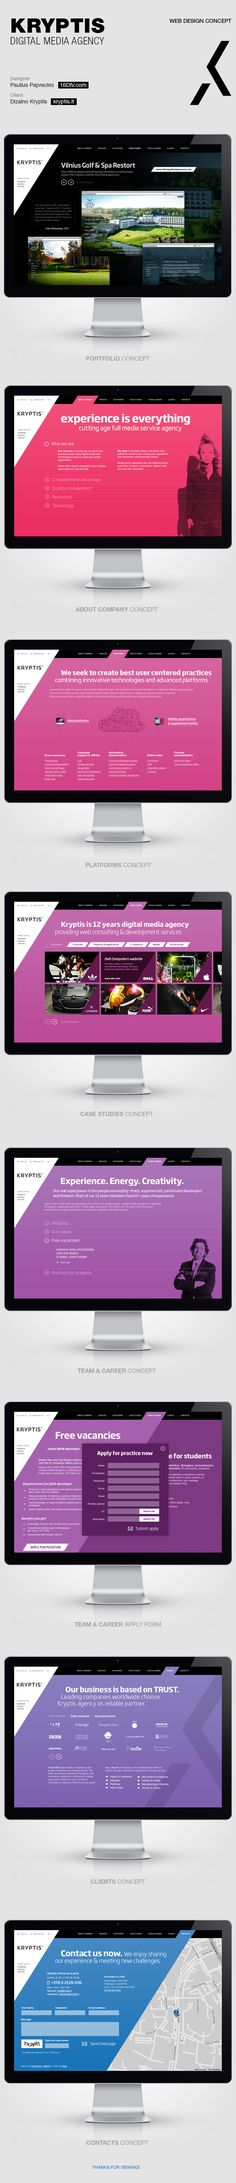 Kryptis web design concept by Paulius Papreckis, via Behance